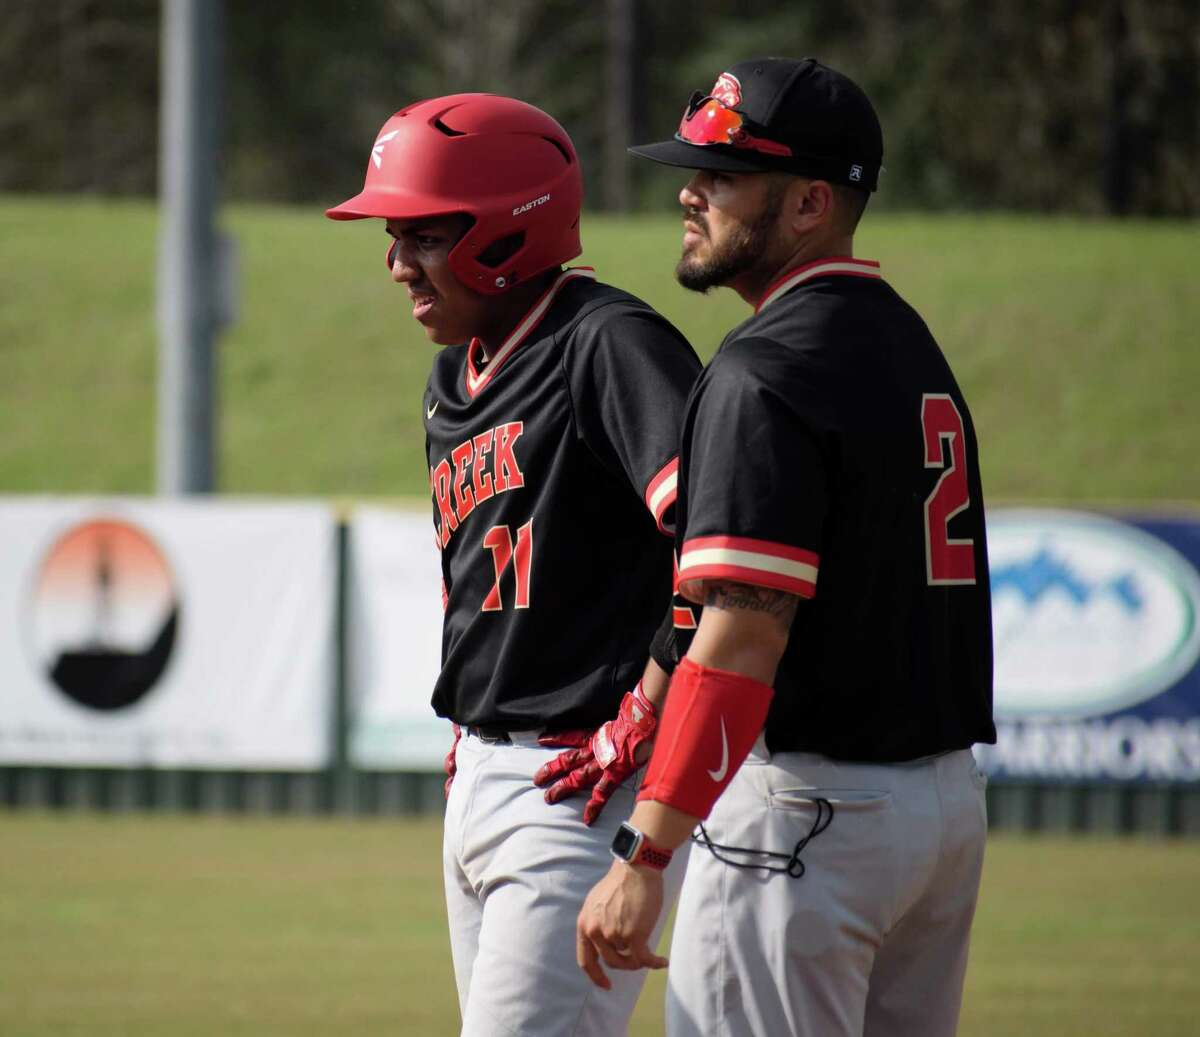 Kristopher Carroll is the new head baseball coach at Caney Creek High School after spending four years with the program as an assistant.